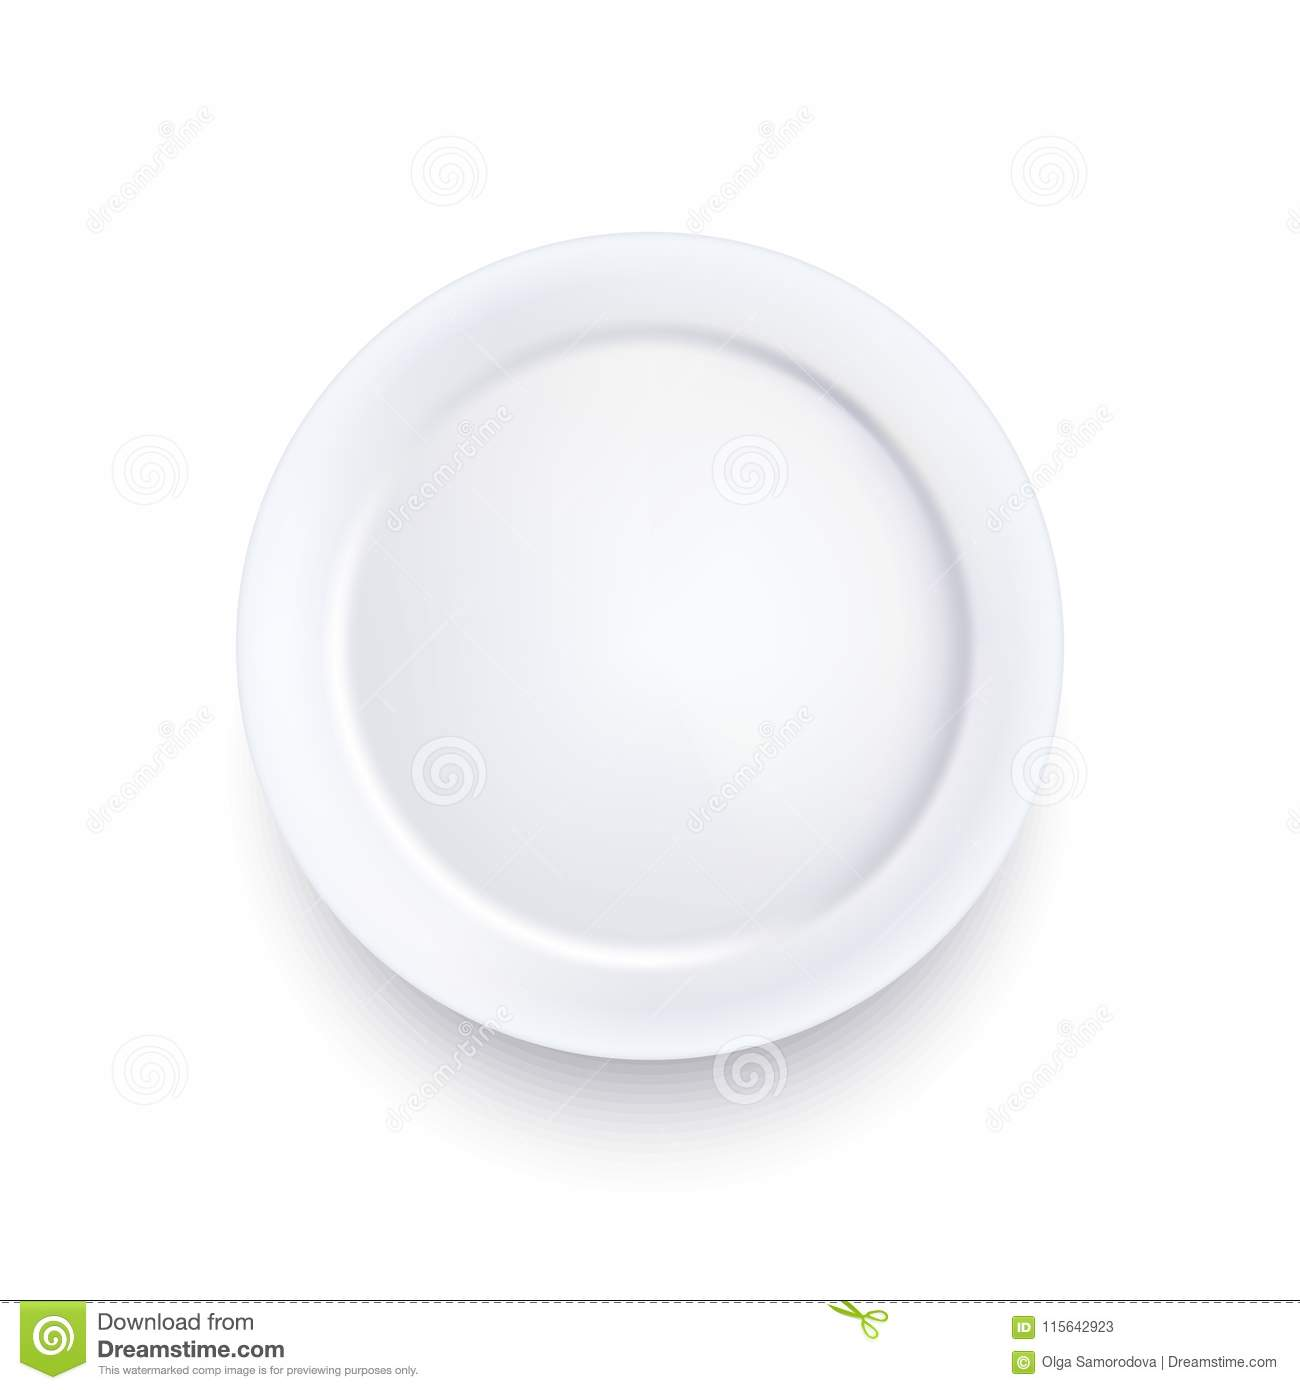 Realistic Detailed 3d Template Blank White Food Plate